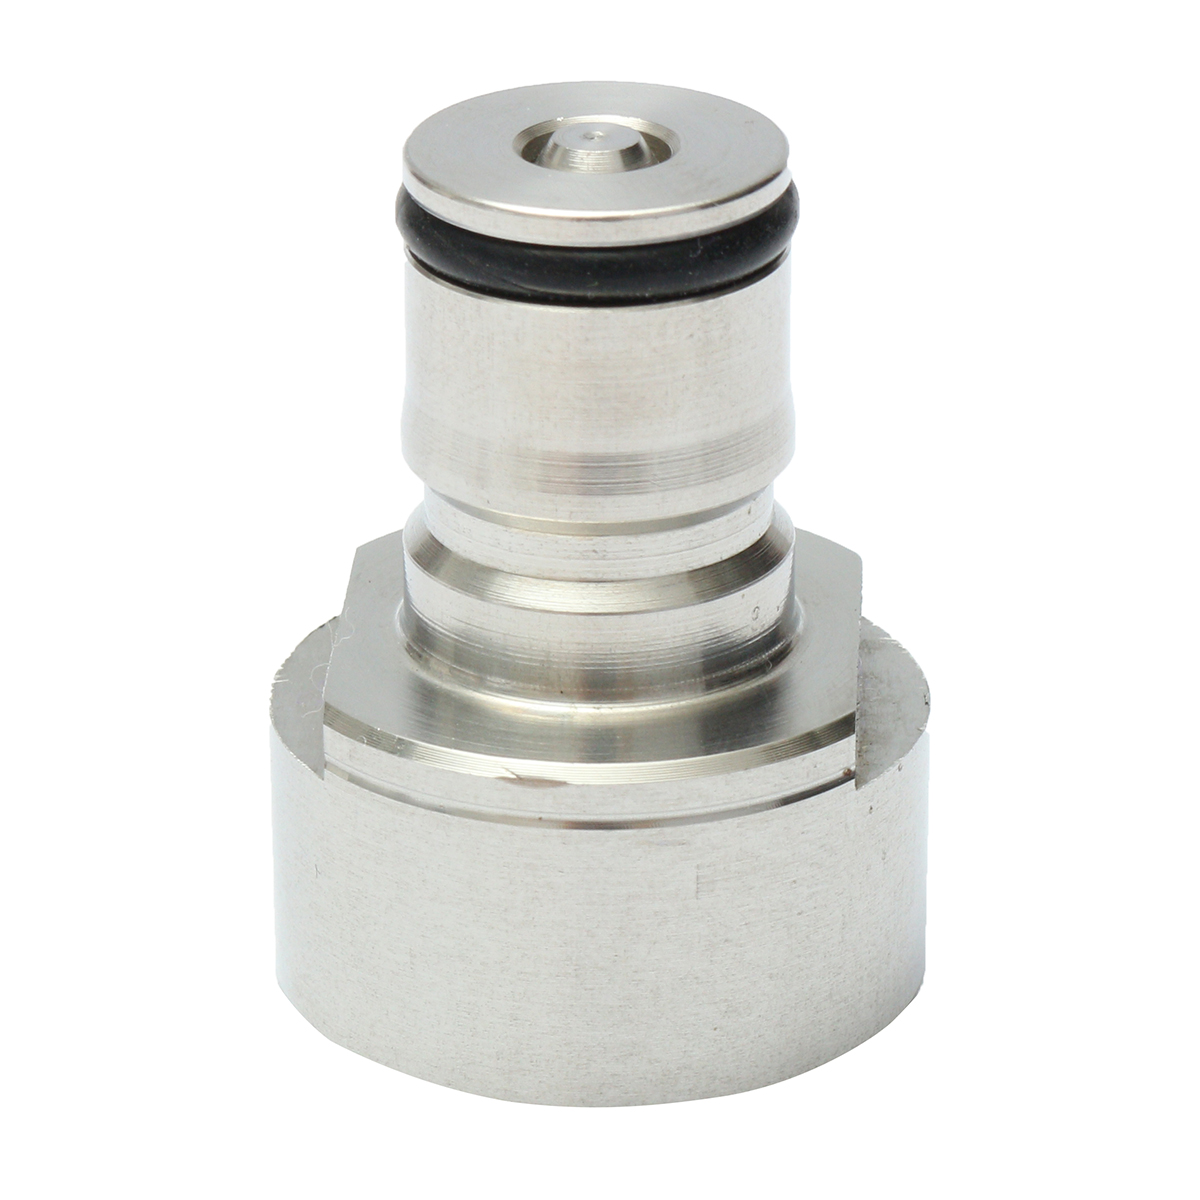 G5/8 Stainless Steel Carbonation Cap Adapter for Home Brew Beer Soda